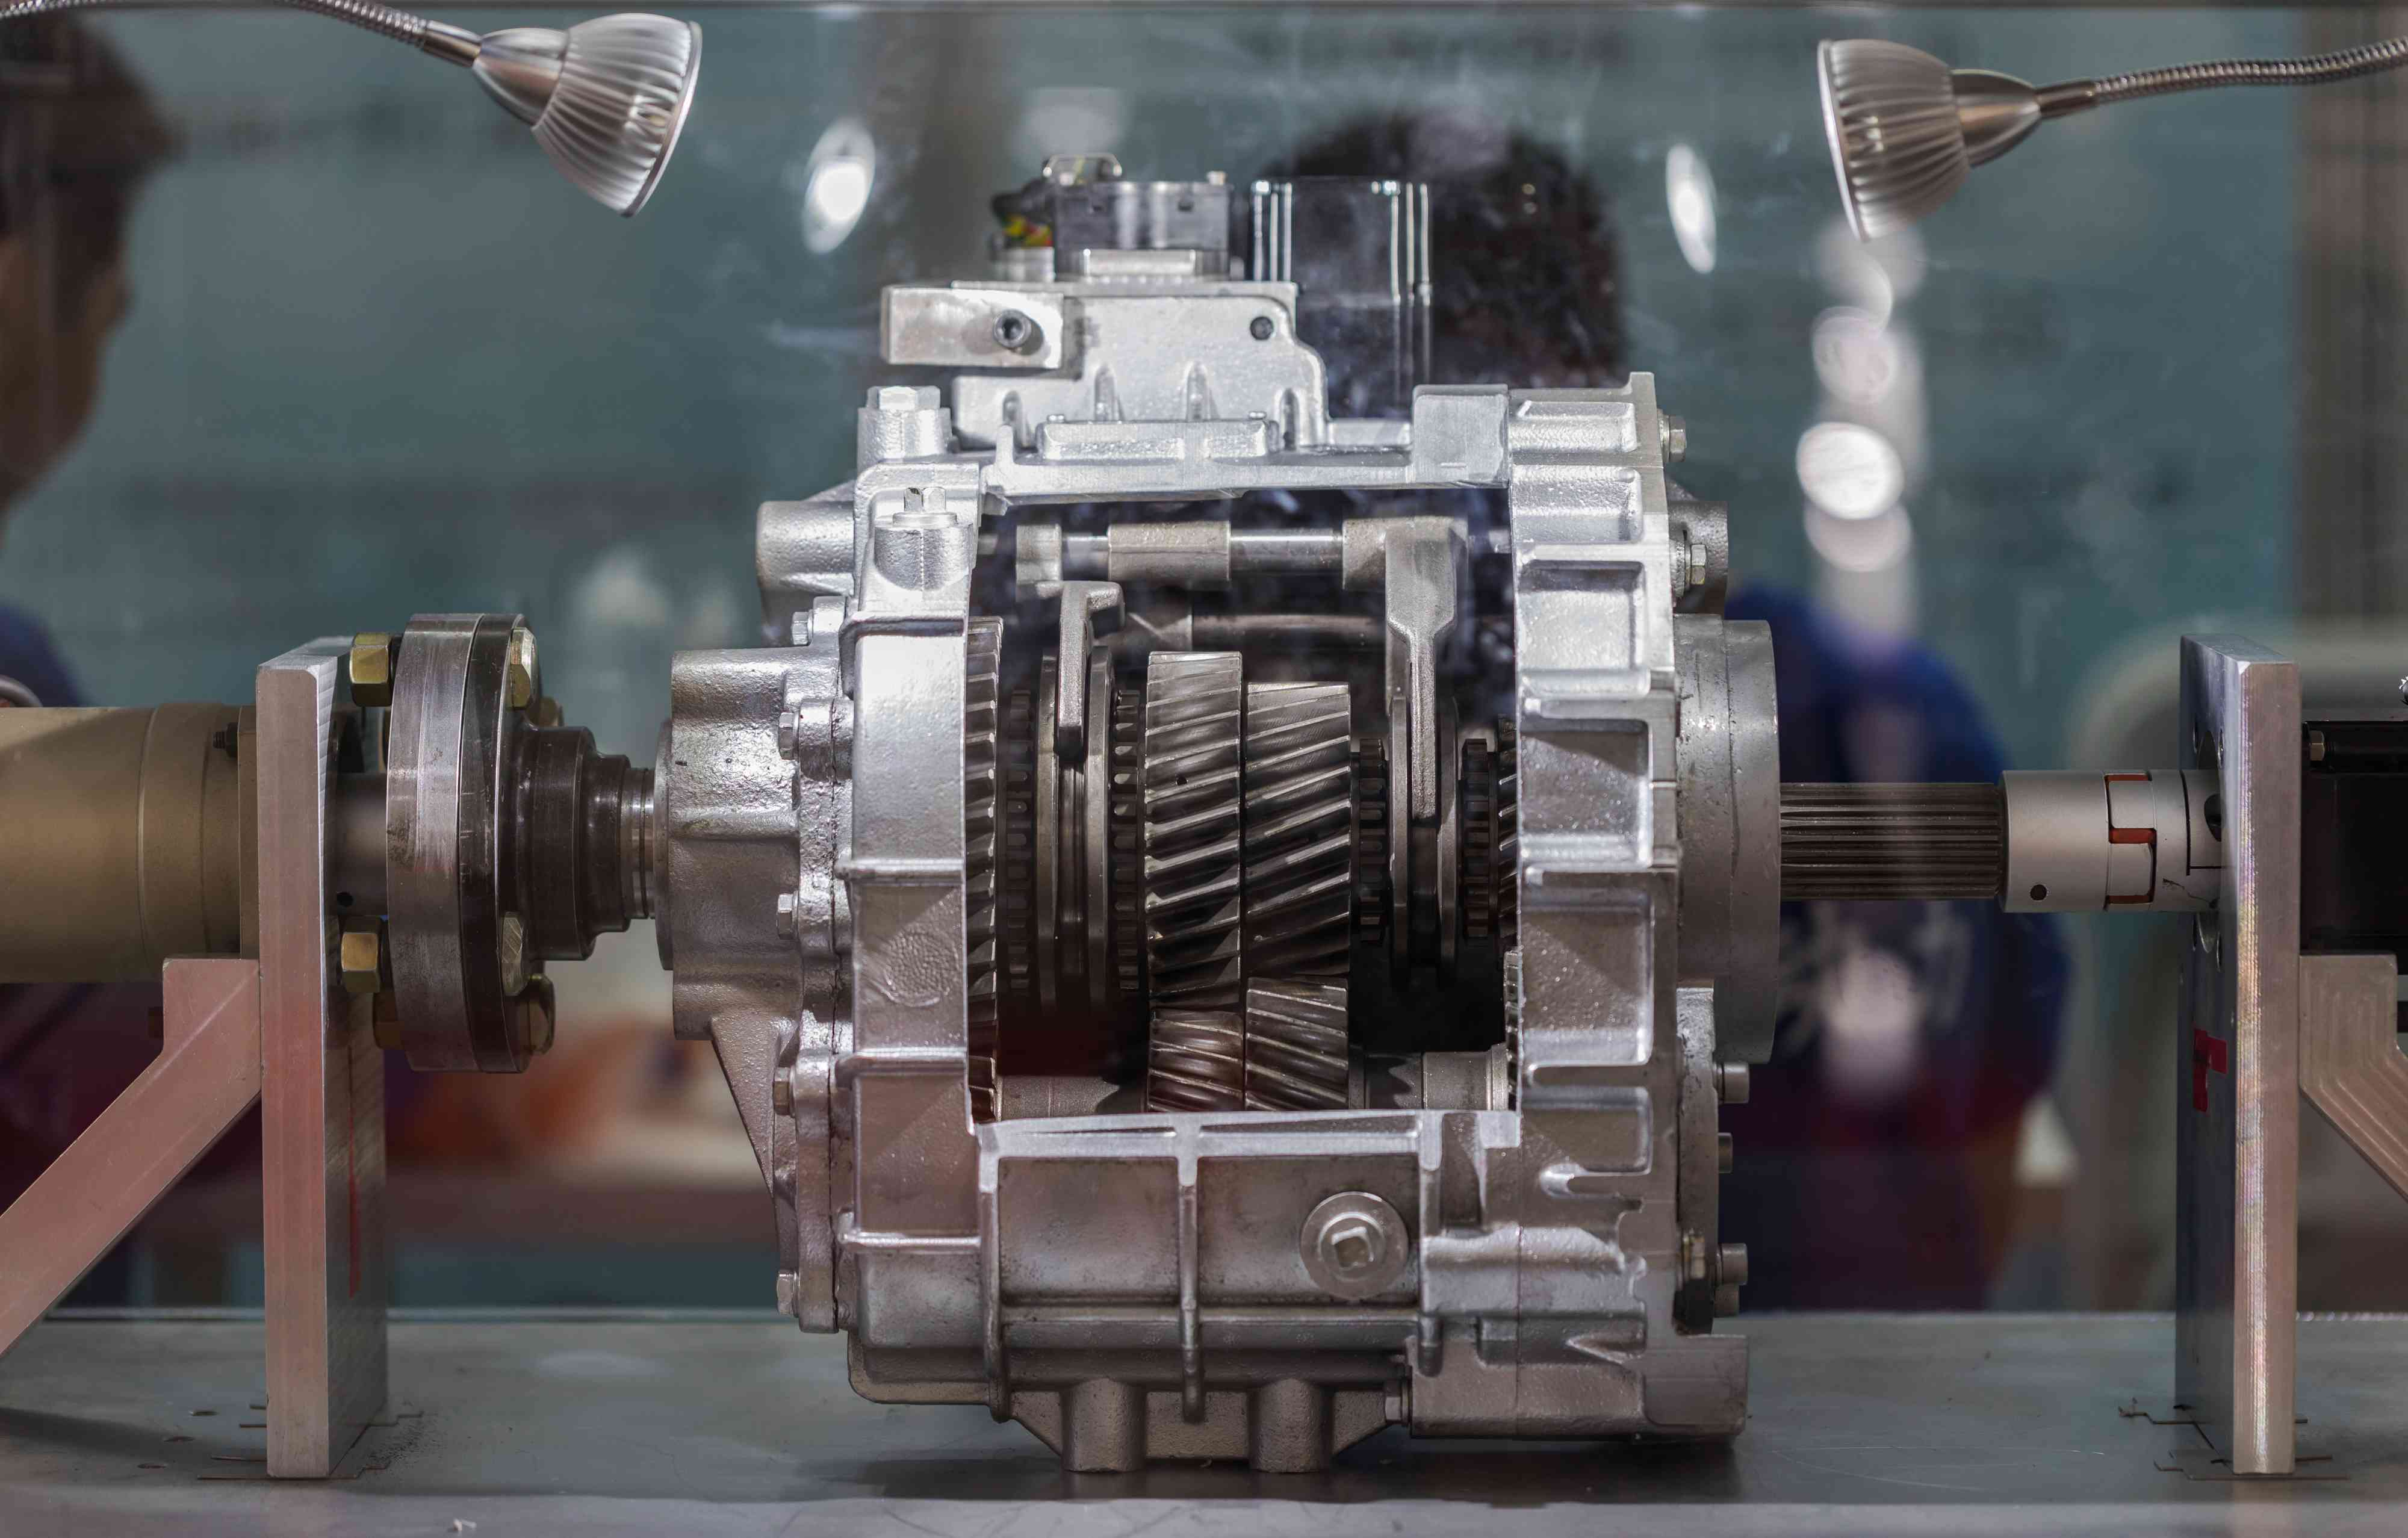 An electric vehicle gearbox